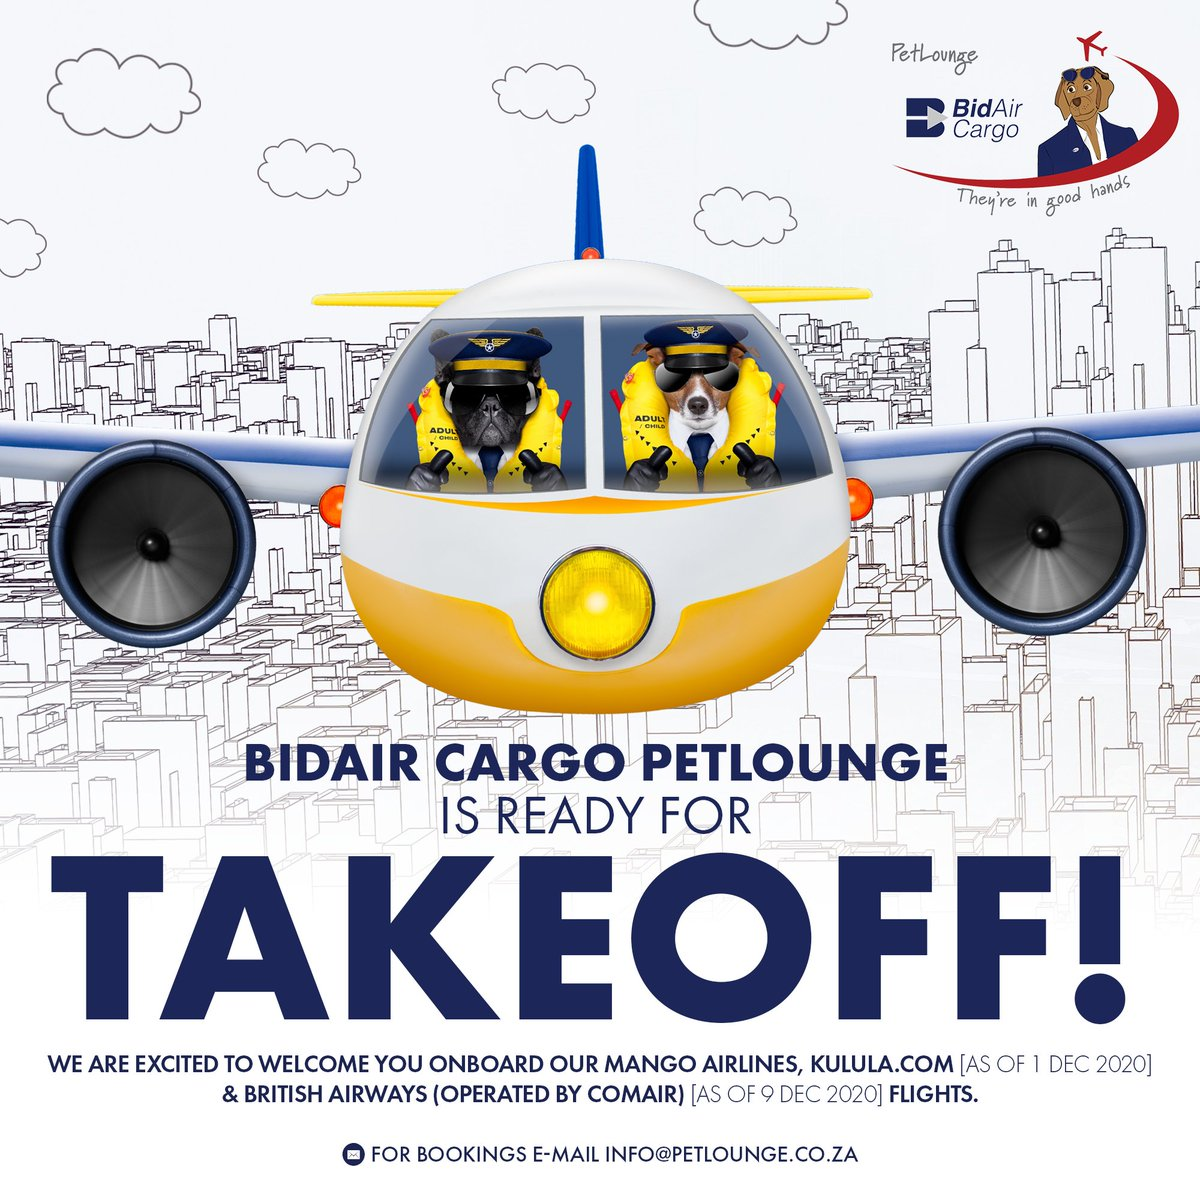 BidAir Cargo #PetLounge is ready for Takeoff! We are excited to welcome you onboard our Mango Airlines, https://t.co/g6GHistnjb [as of 1 Dec 2020] & British Airways (operated by Comair) [as of 9 Dec 2020] flights. ✈️ For Bookings e-mail info@petlounge.co.za 🐾 #SouthAfrica https://t.co/KyT46zPN25